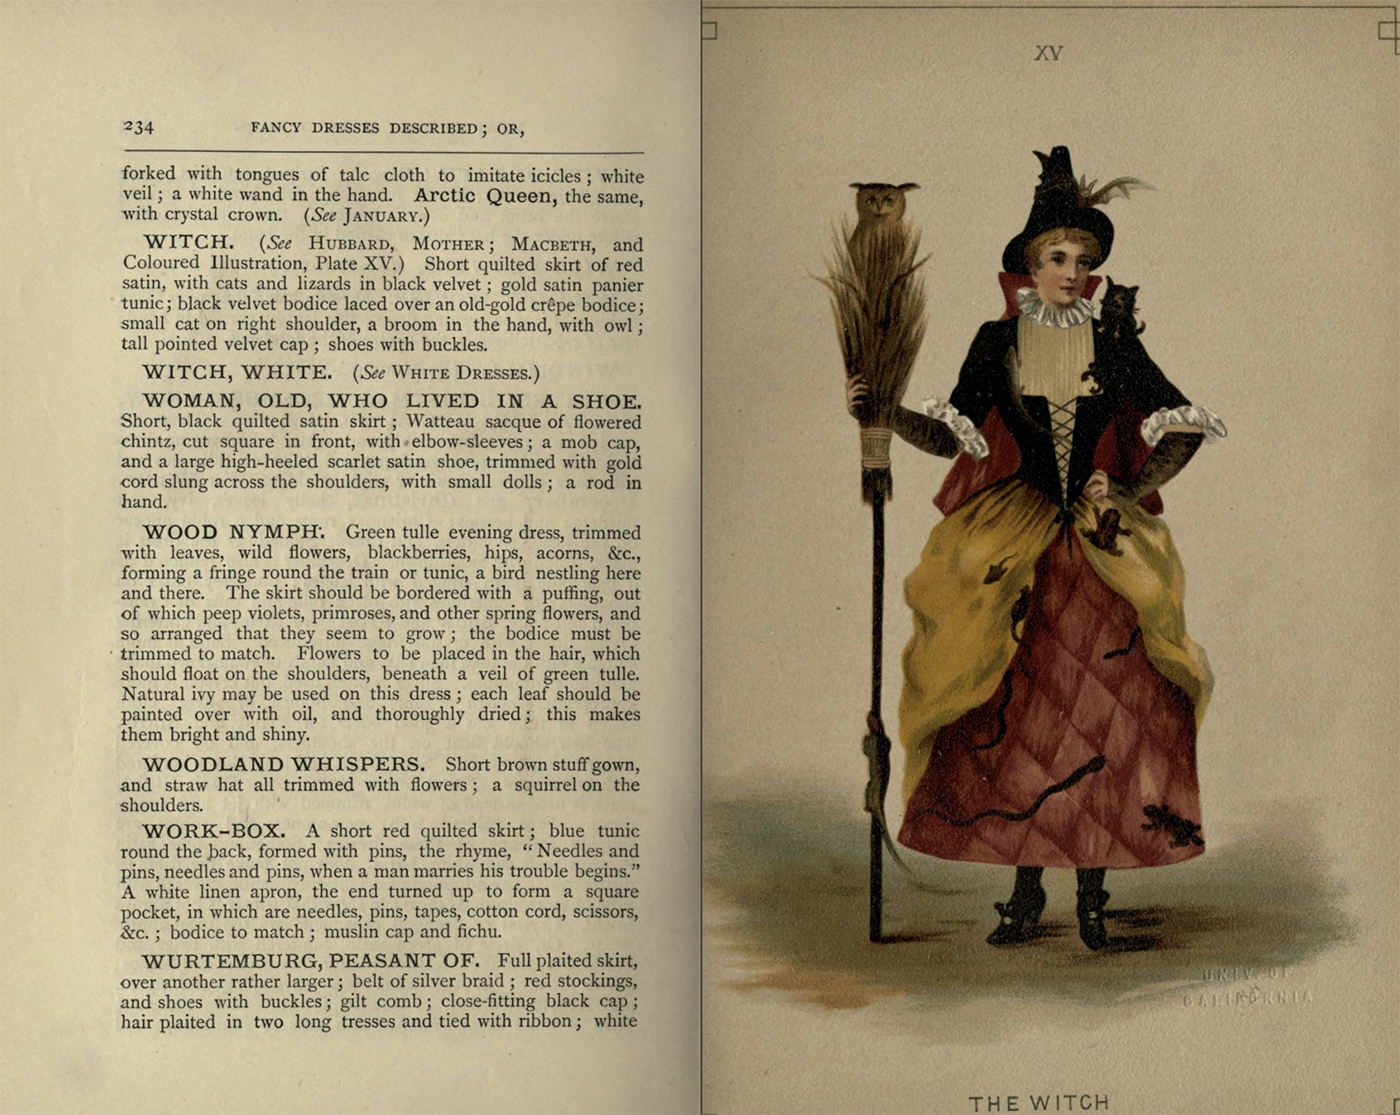 """Costume for """"the Witch"""" from Fancy dresses described : or, What to wear at fancy balls (1887) (via Internet Archive)"""